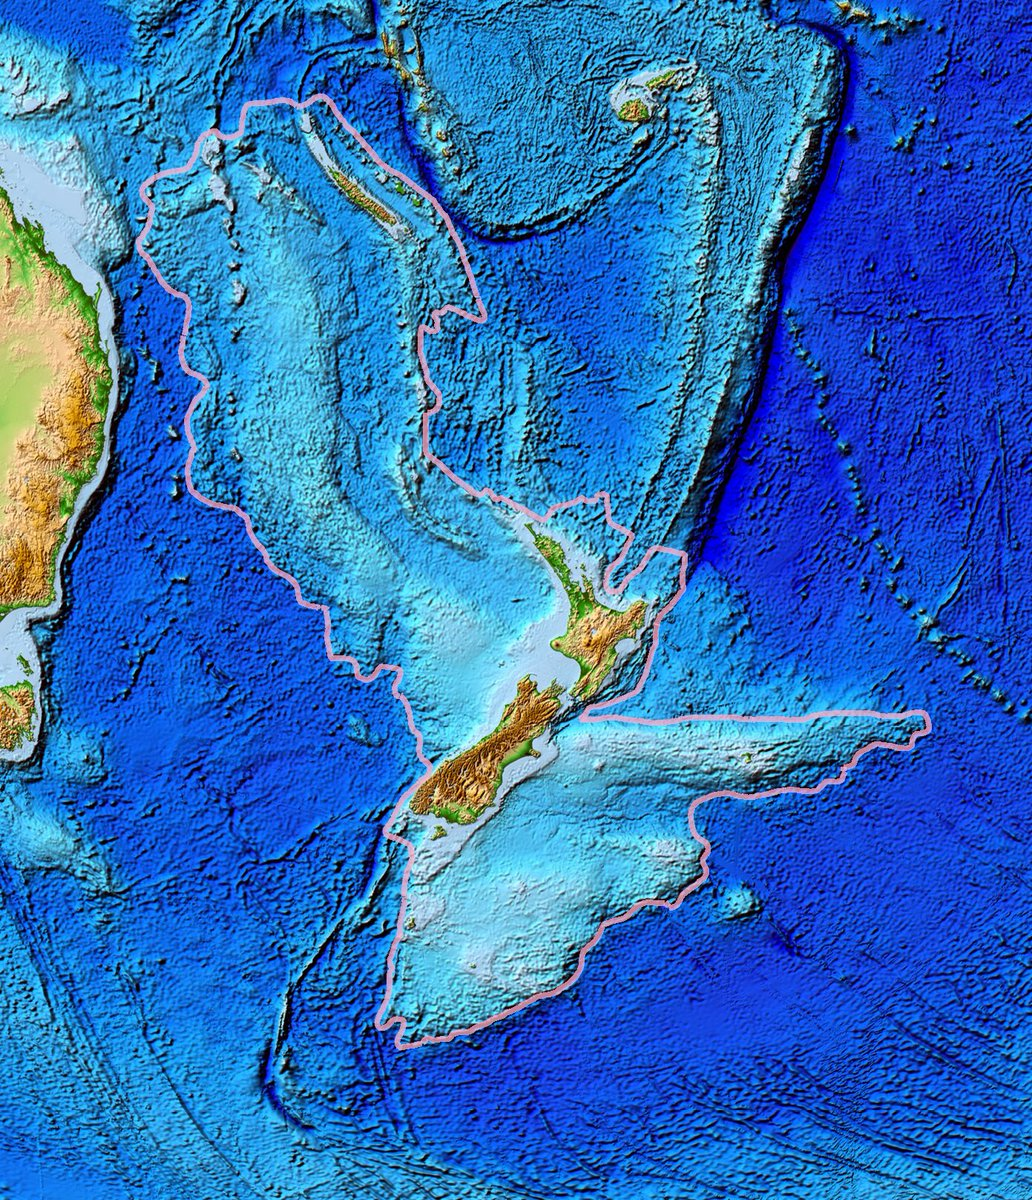 This is Zealandia - more than half the size of the Australian continent. Source: en.m.wikipedia.org/wiki/Zealandia